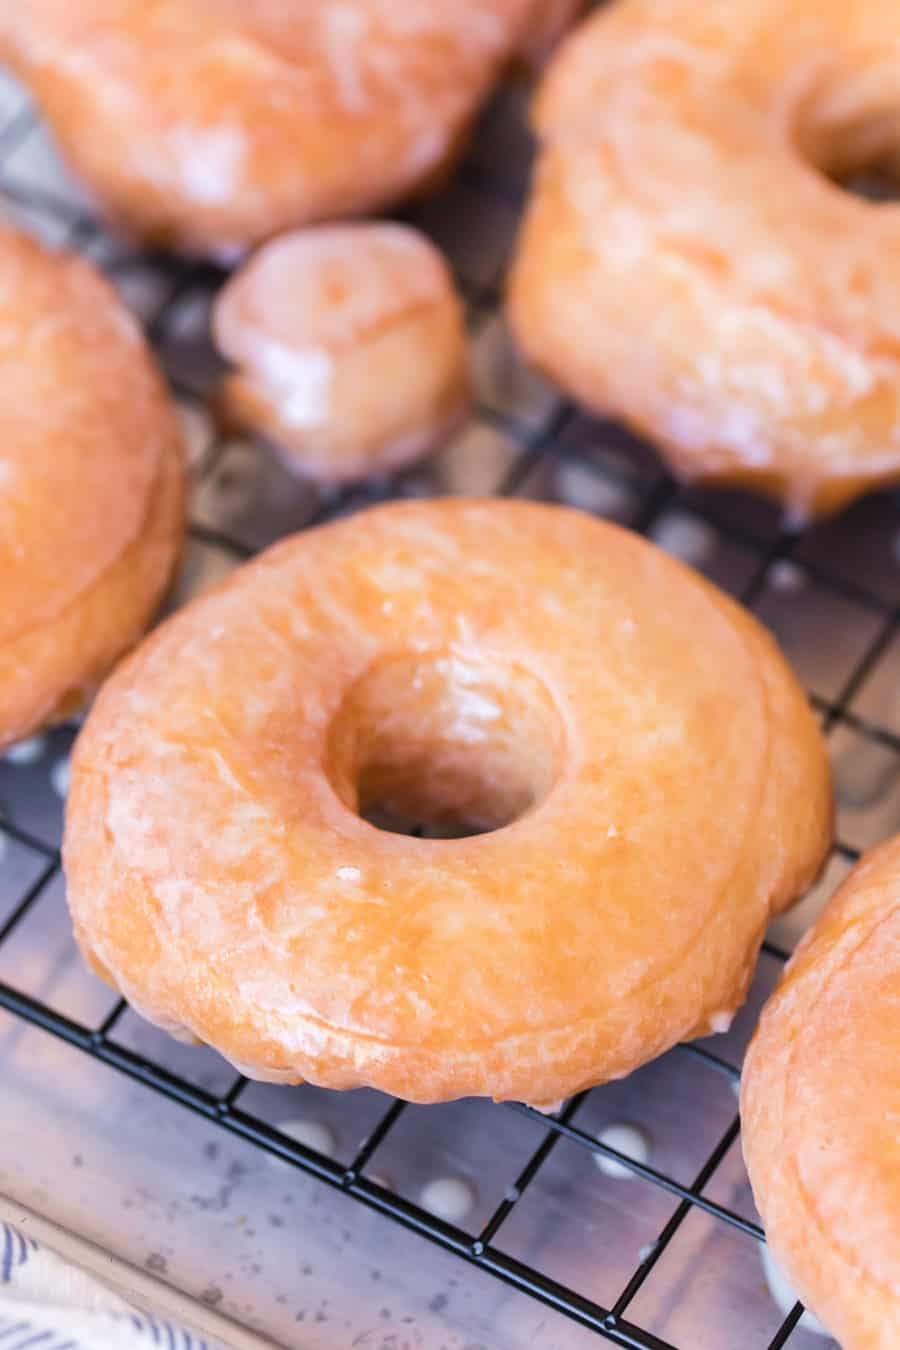 Glazed donuts on a rack